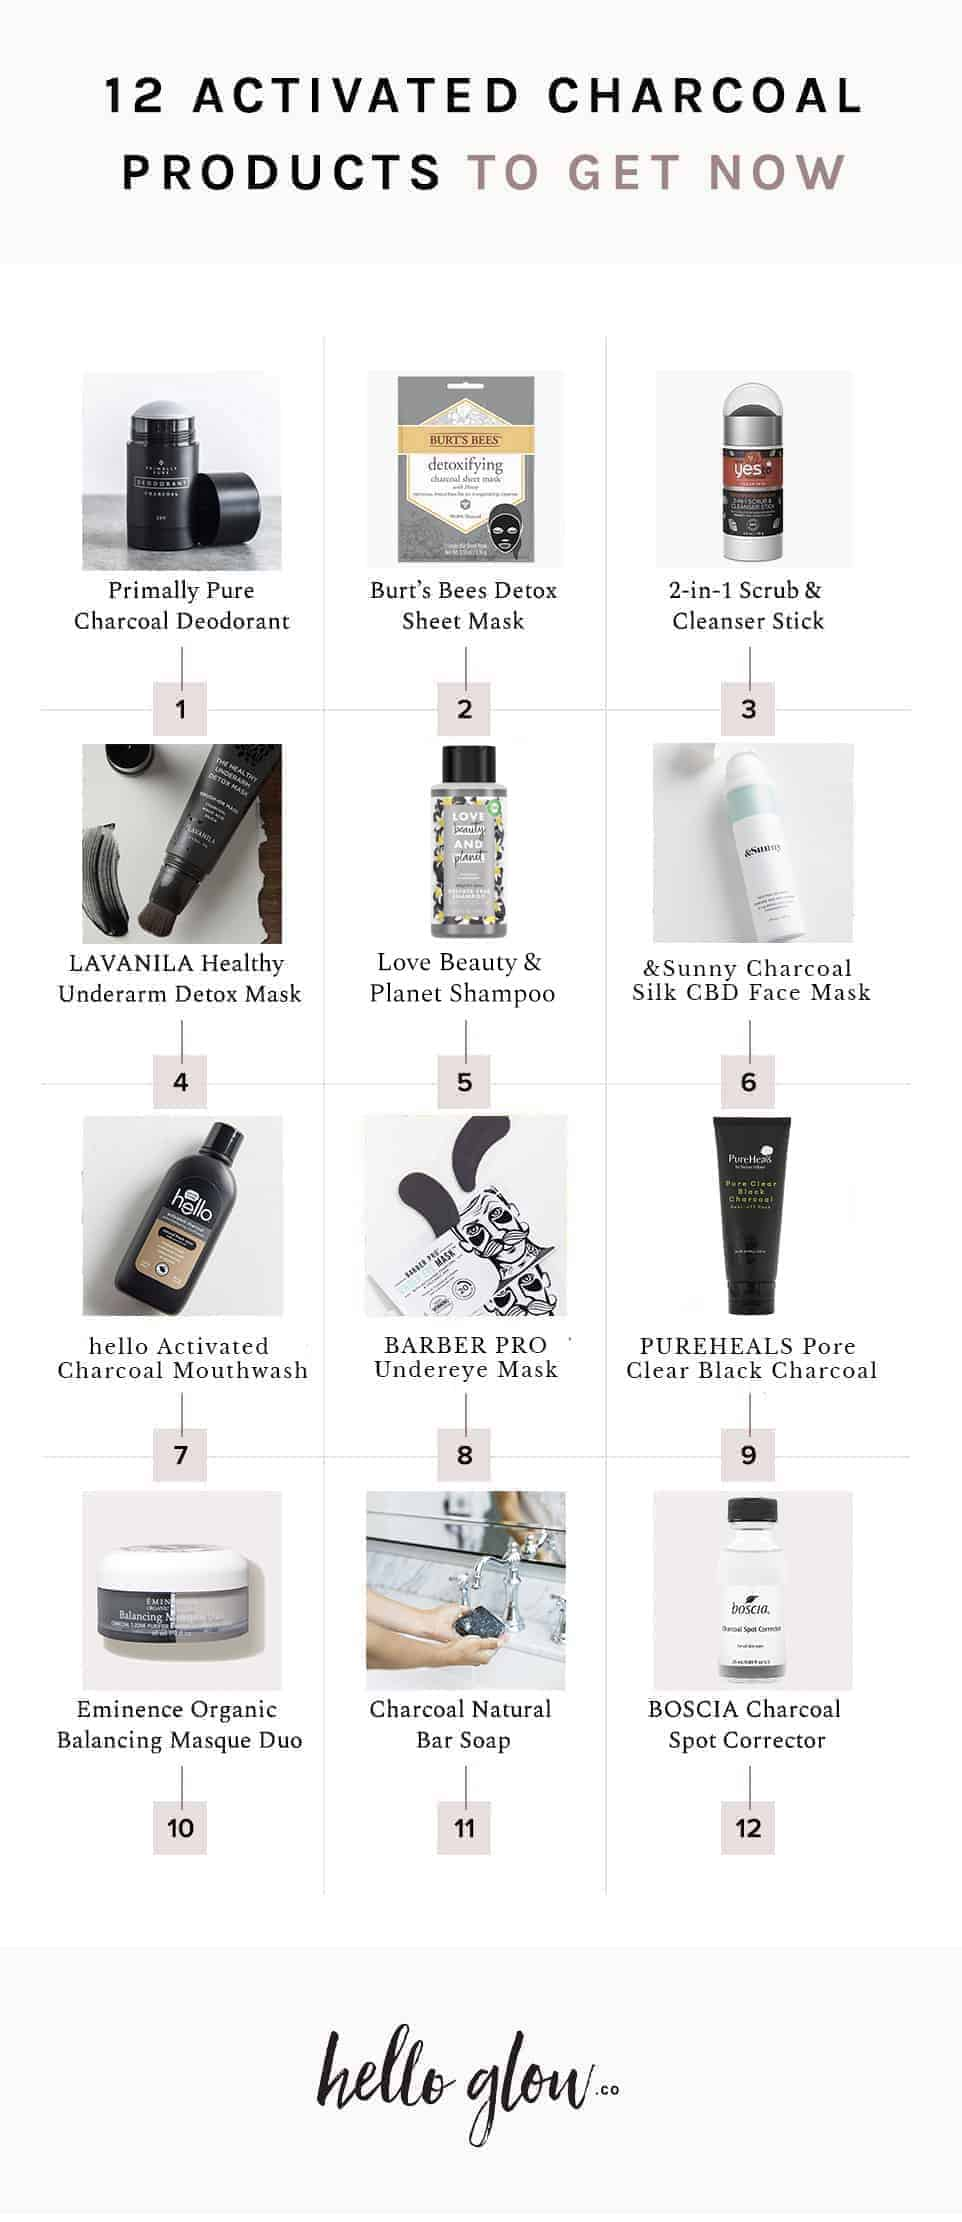 12 Activated Charcoal Products to Try Now - HelloGlow.co